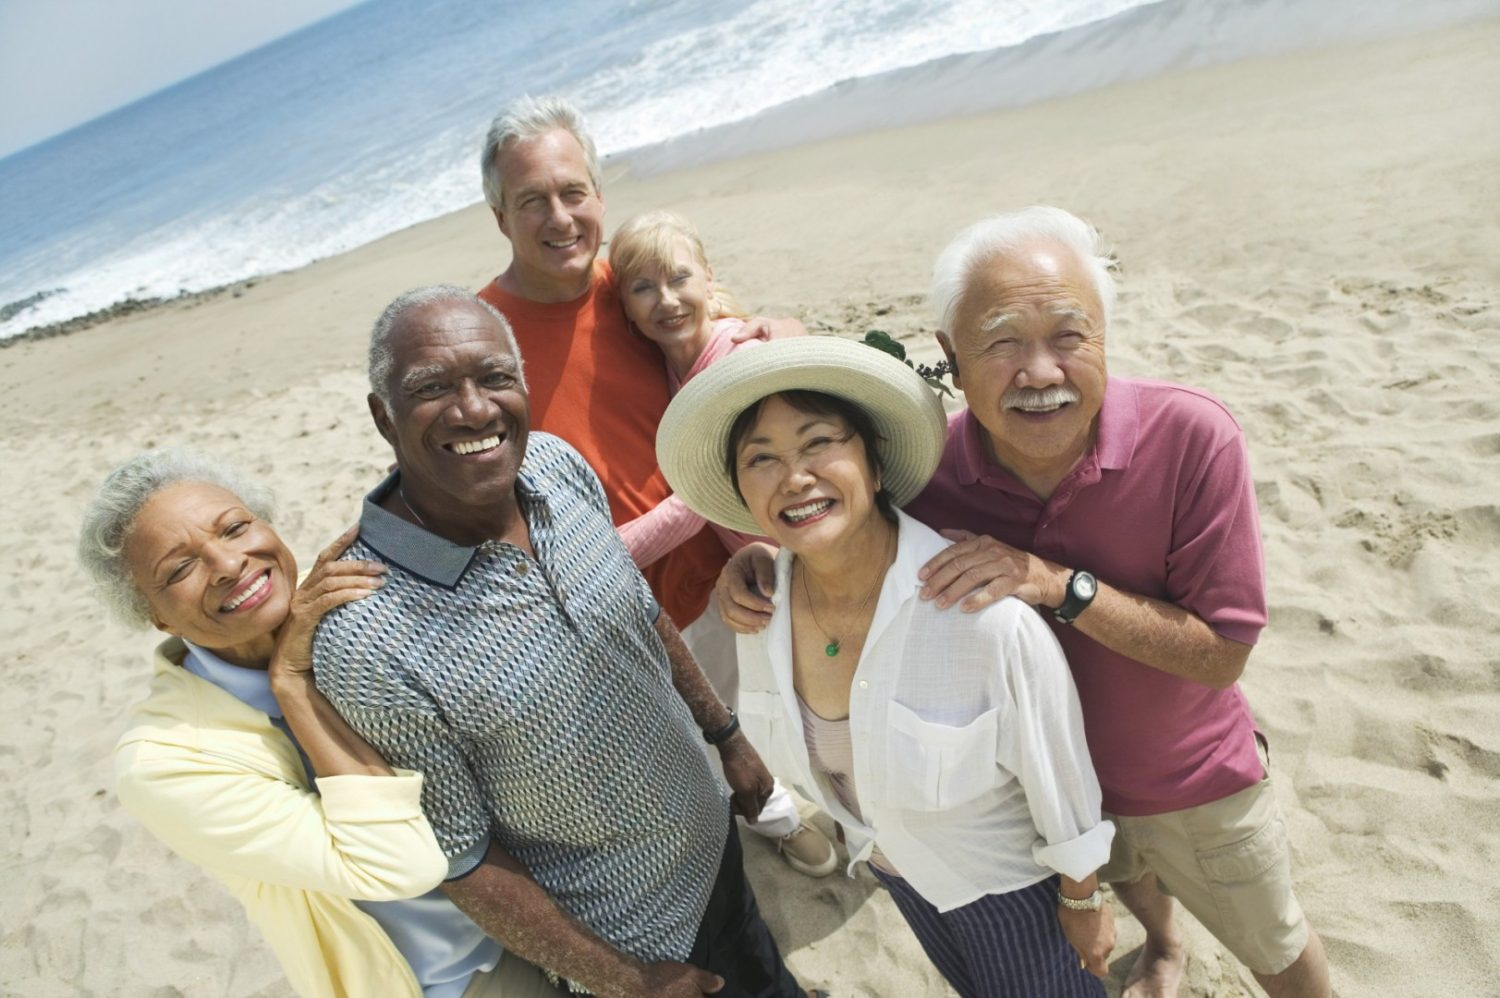 multi-ethnic group of seniors on the beach, older adults